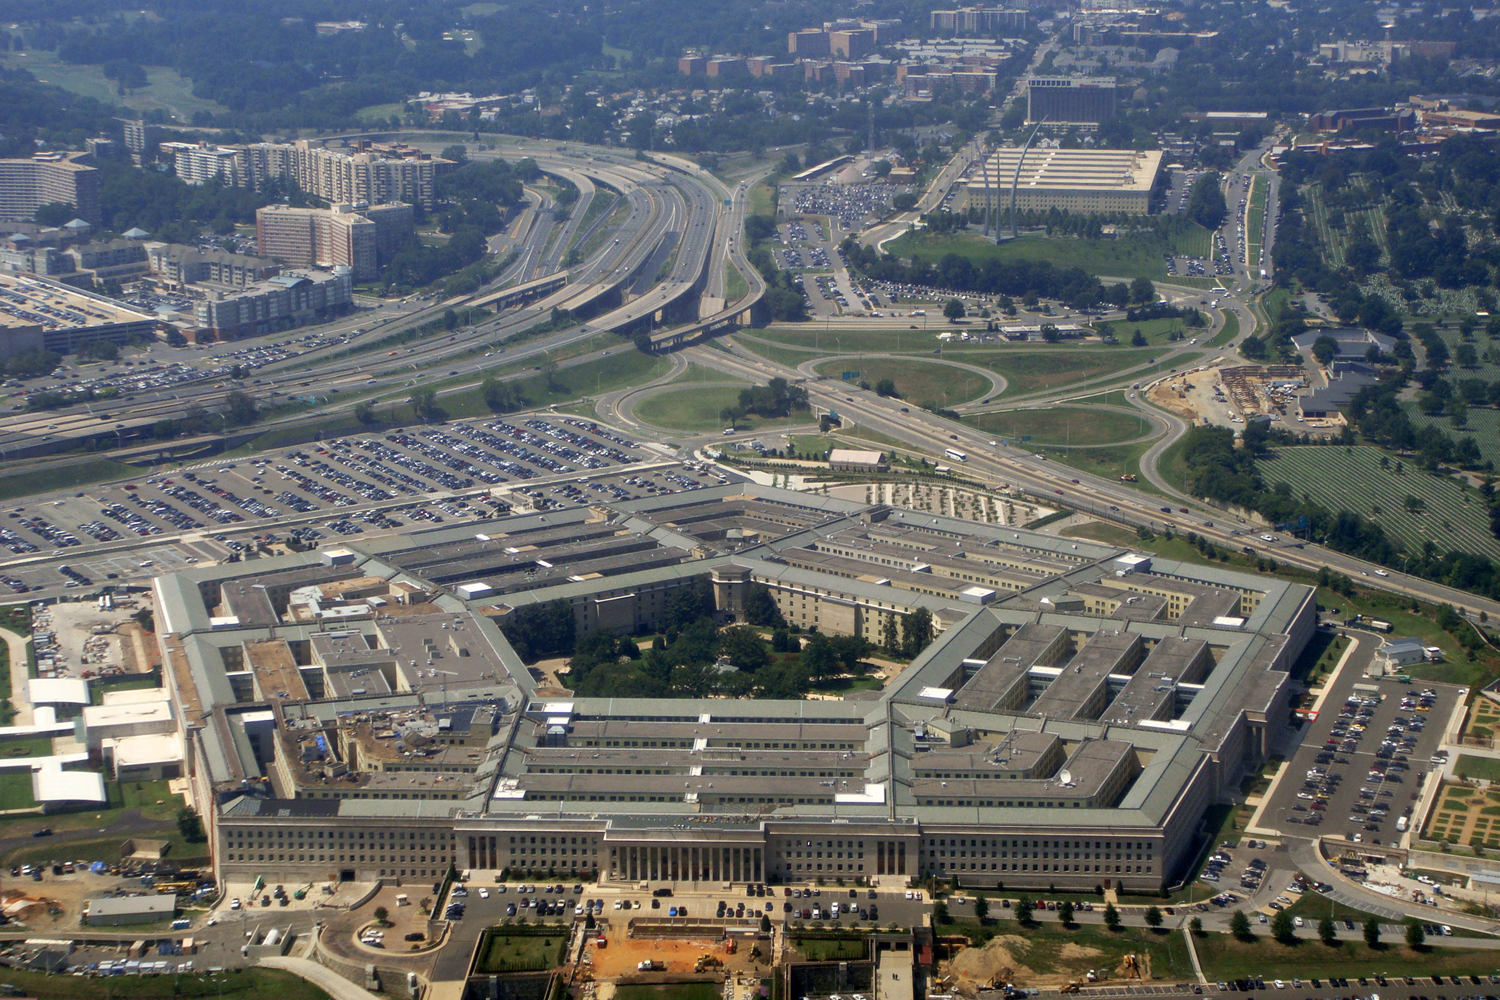 The Pentagon - Military